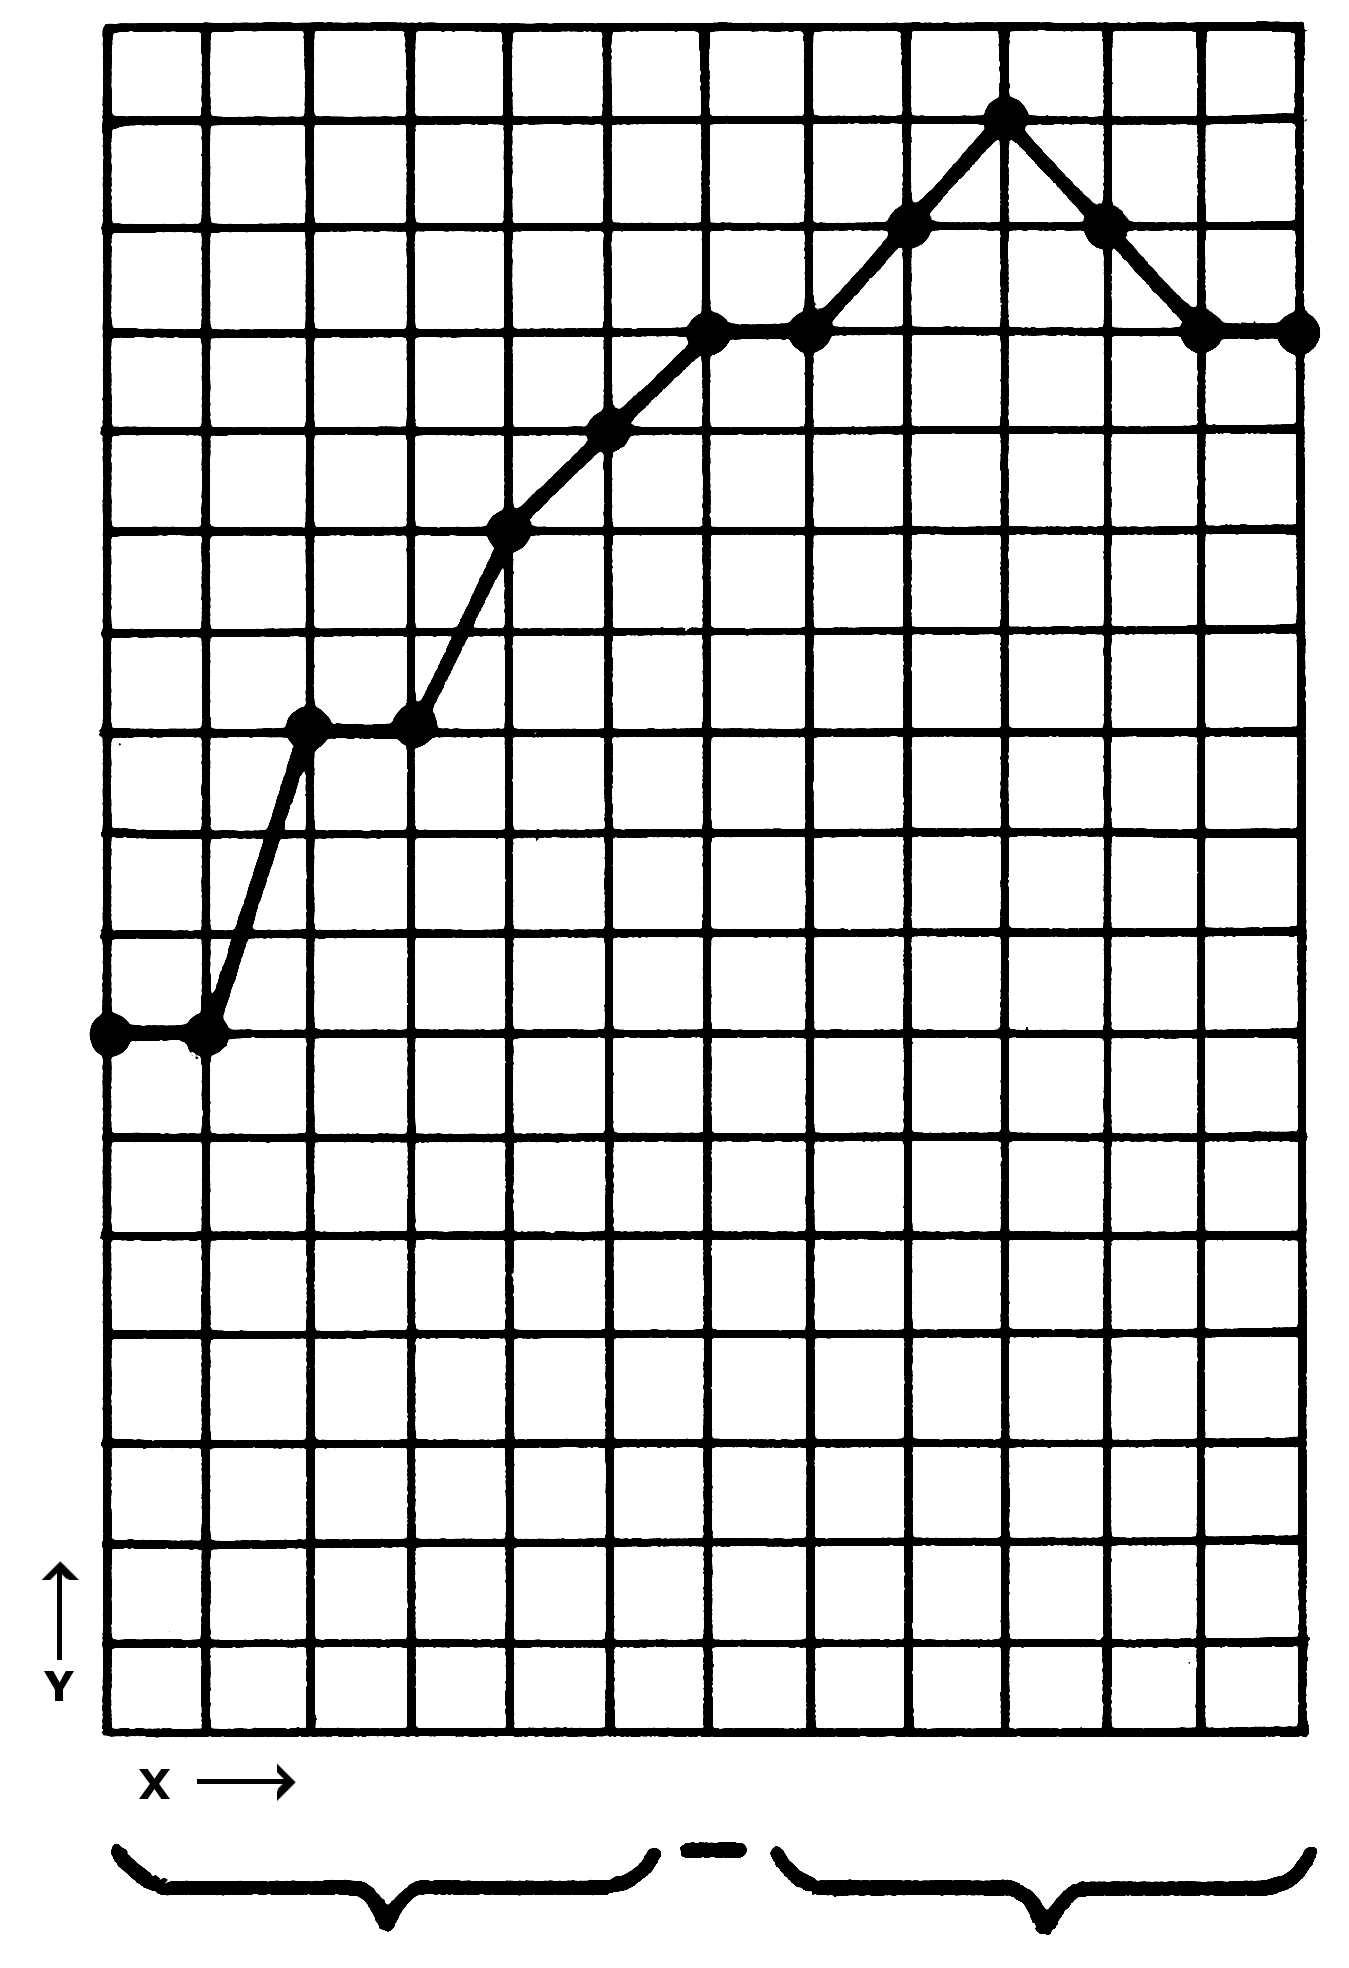 how to make a graph indeoendentd variable